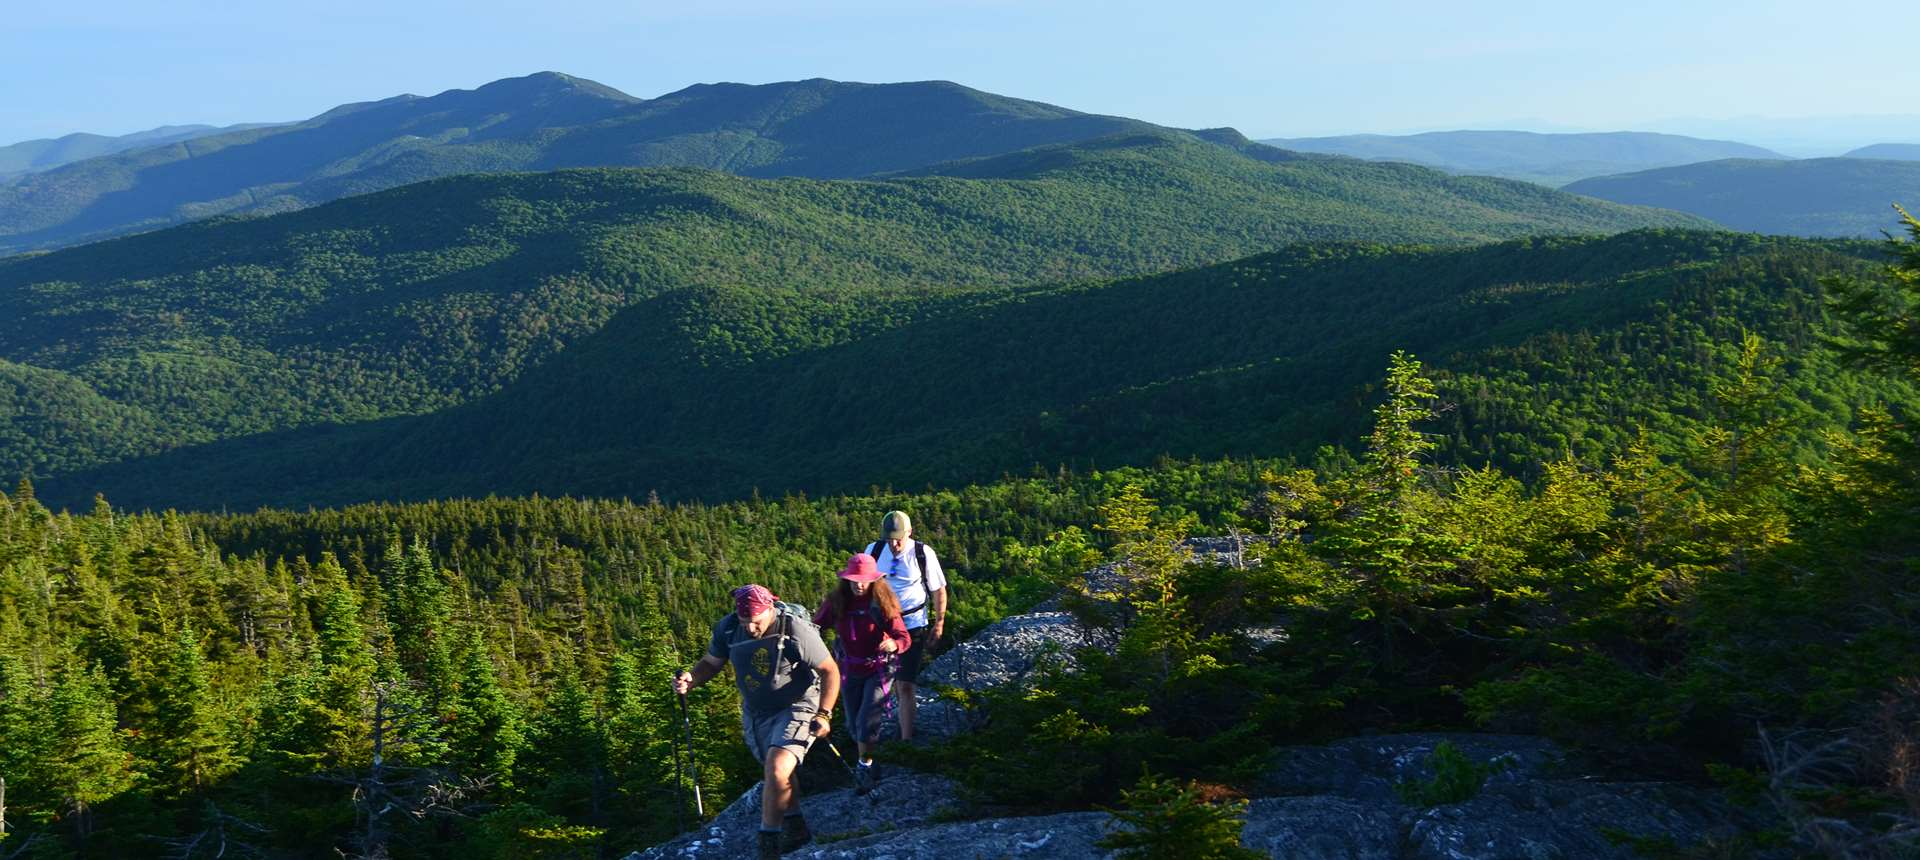 Hiking the Long Trail in Vermont's Green Mountains